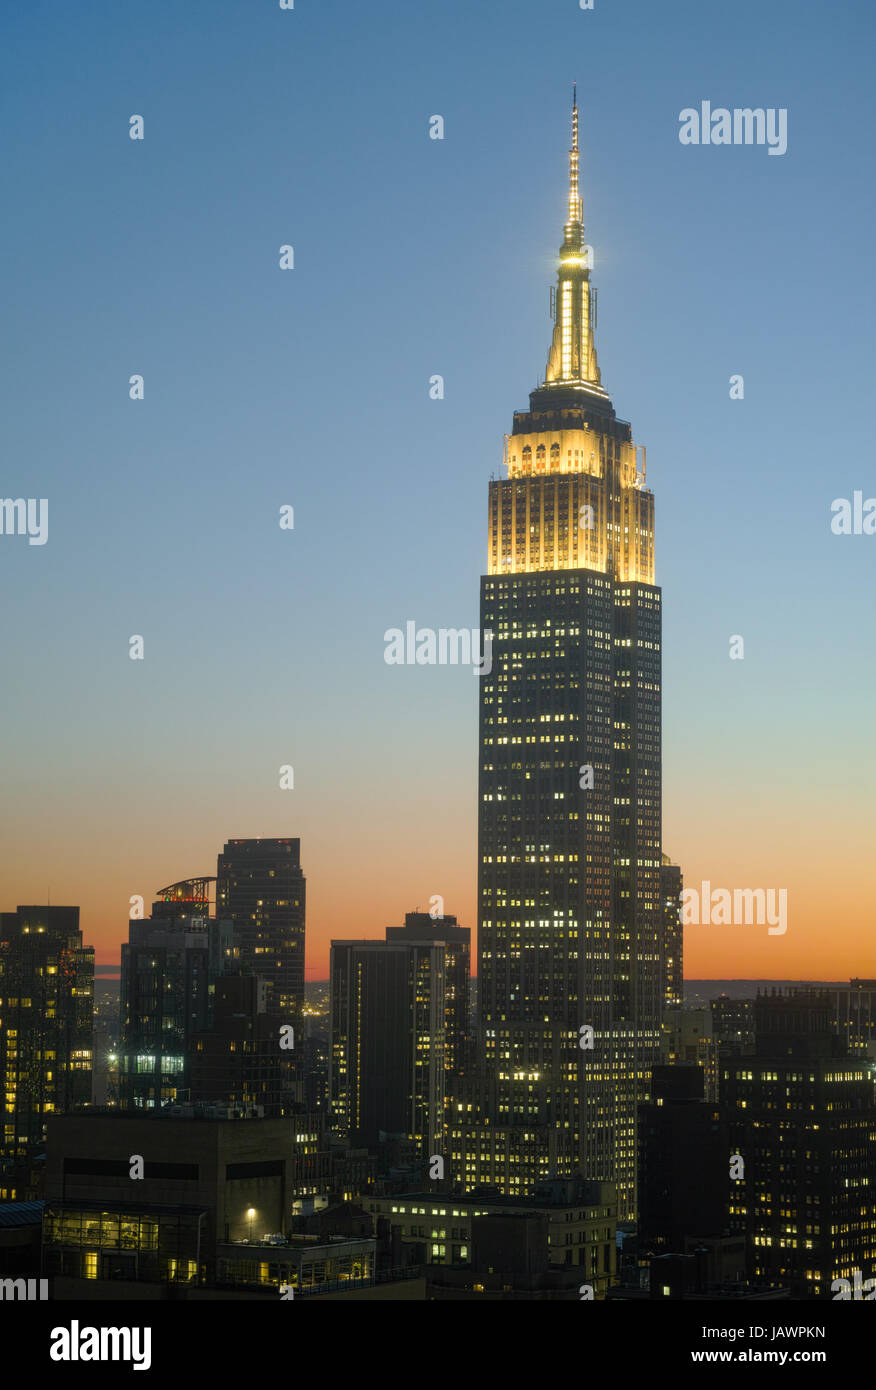 Empire State Building at sunset with yellow tower lights in honor of young artists and writers. Dark silhouettes - Stock Image